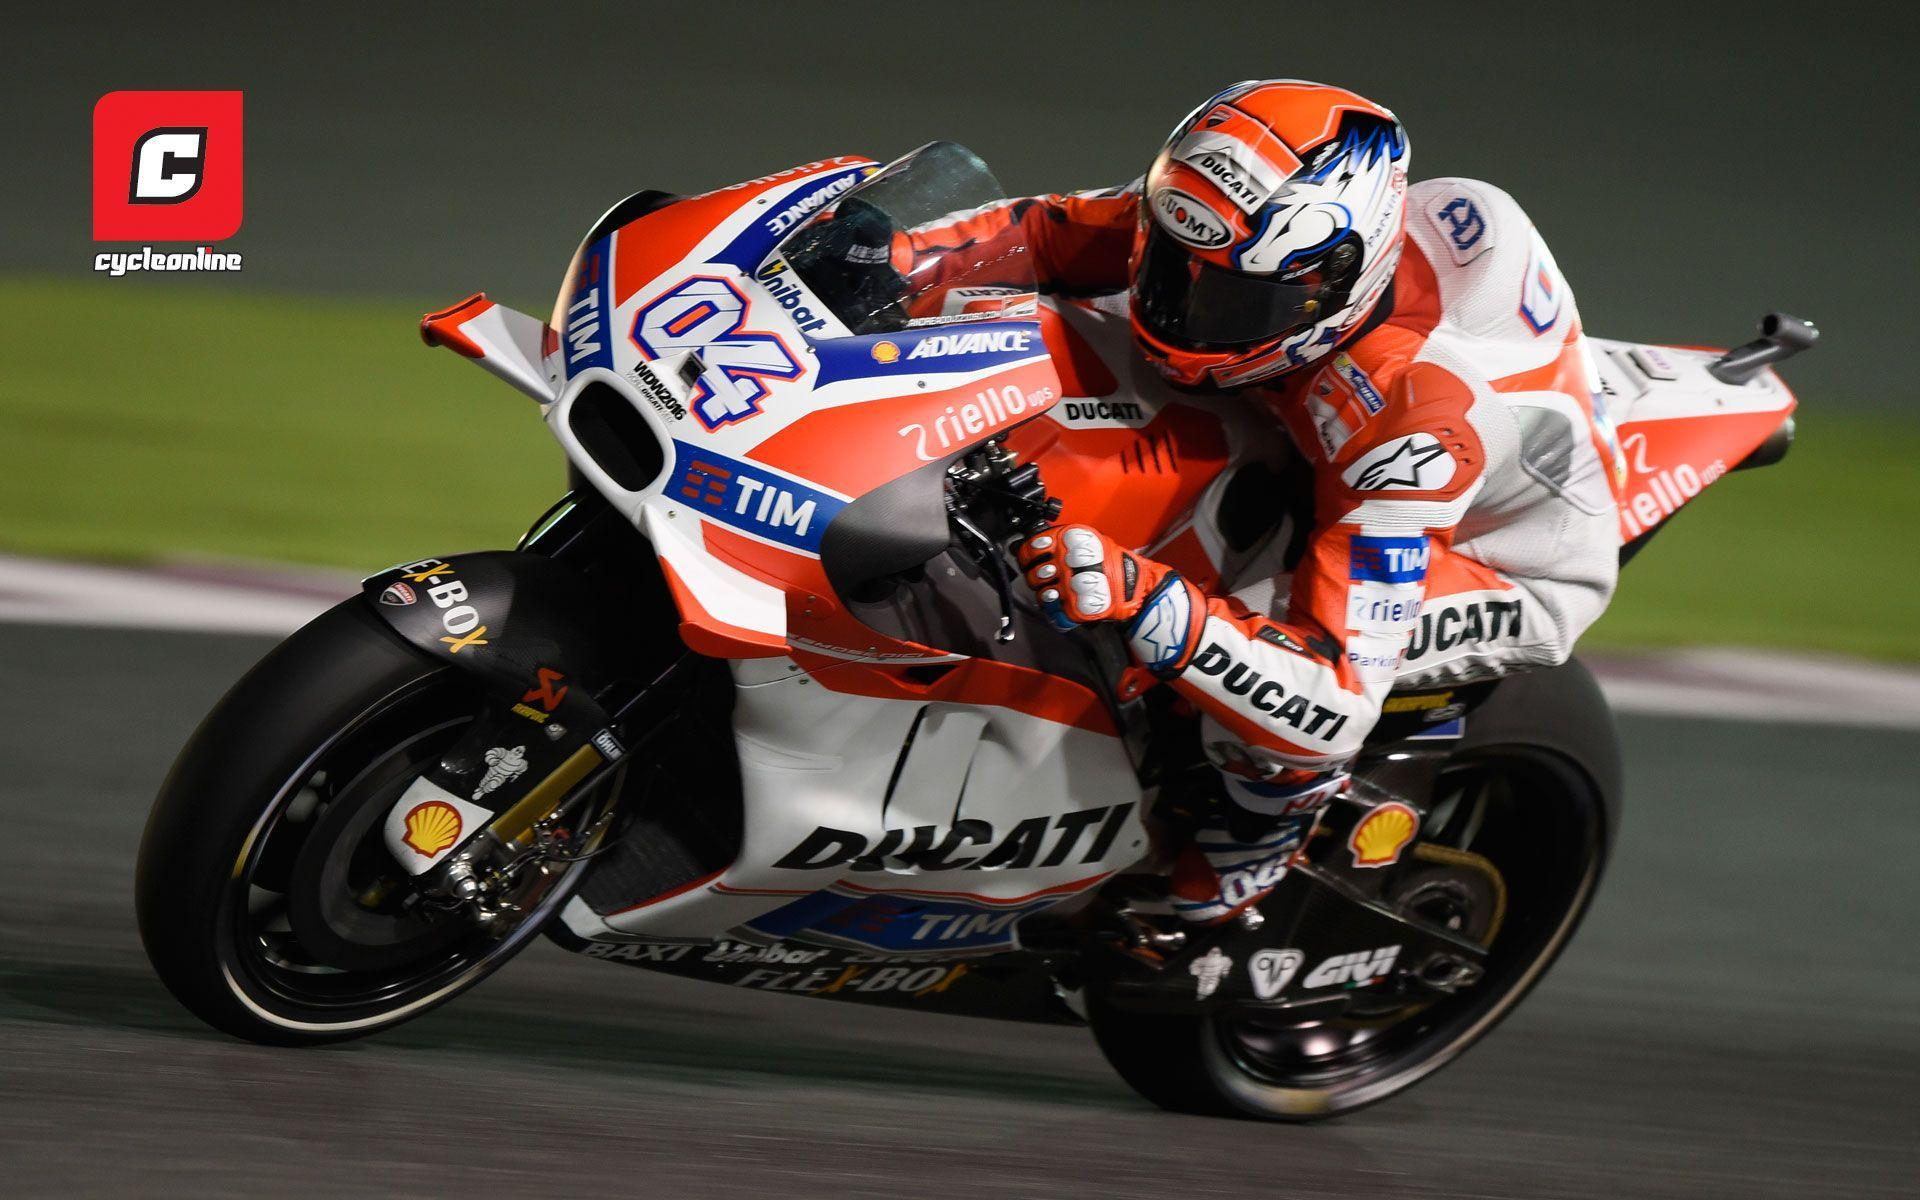 Wallpaper: Andrea Dovizioso